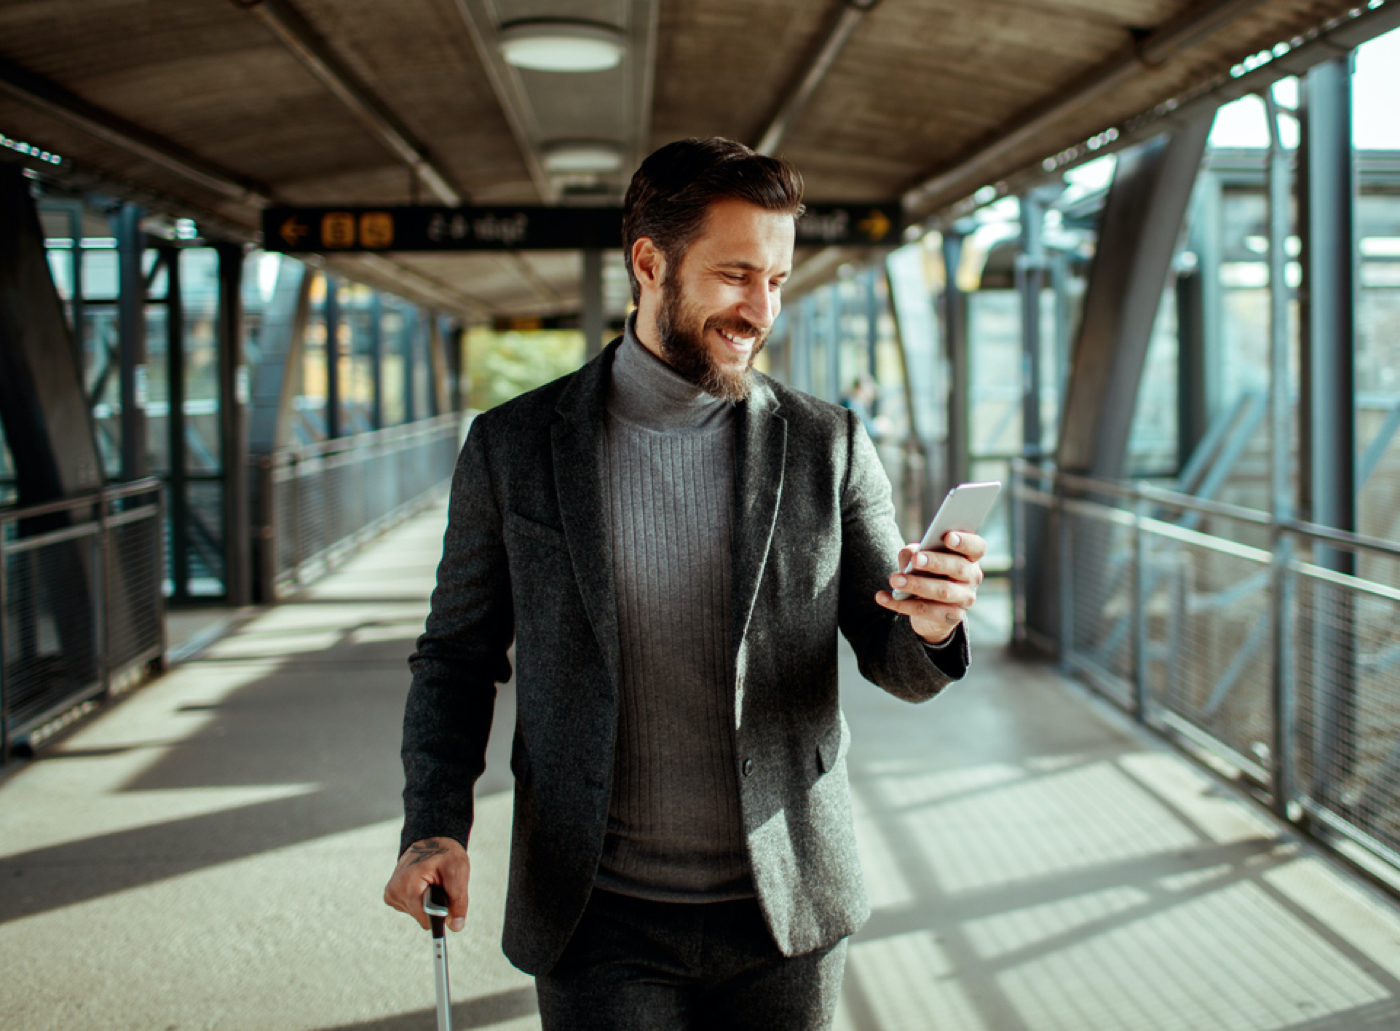 smiling man walking with luggage checking his cell phone